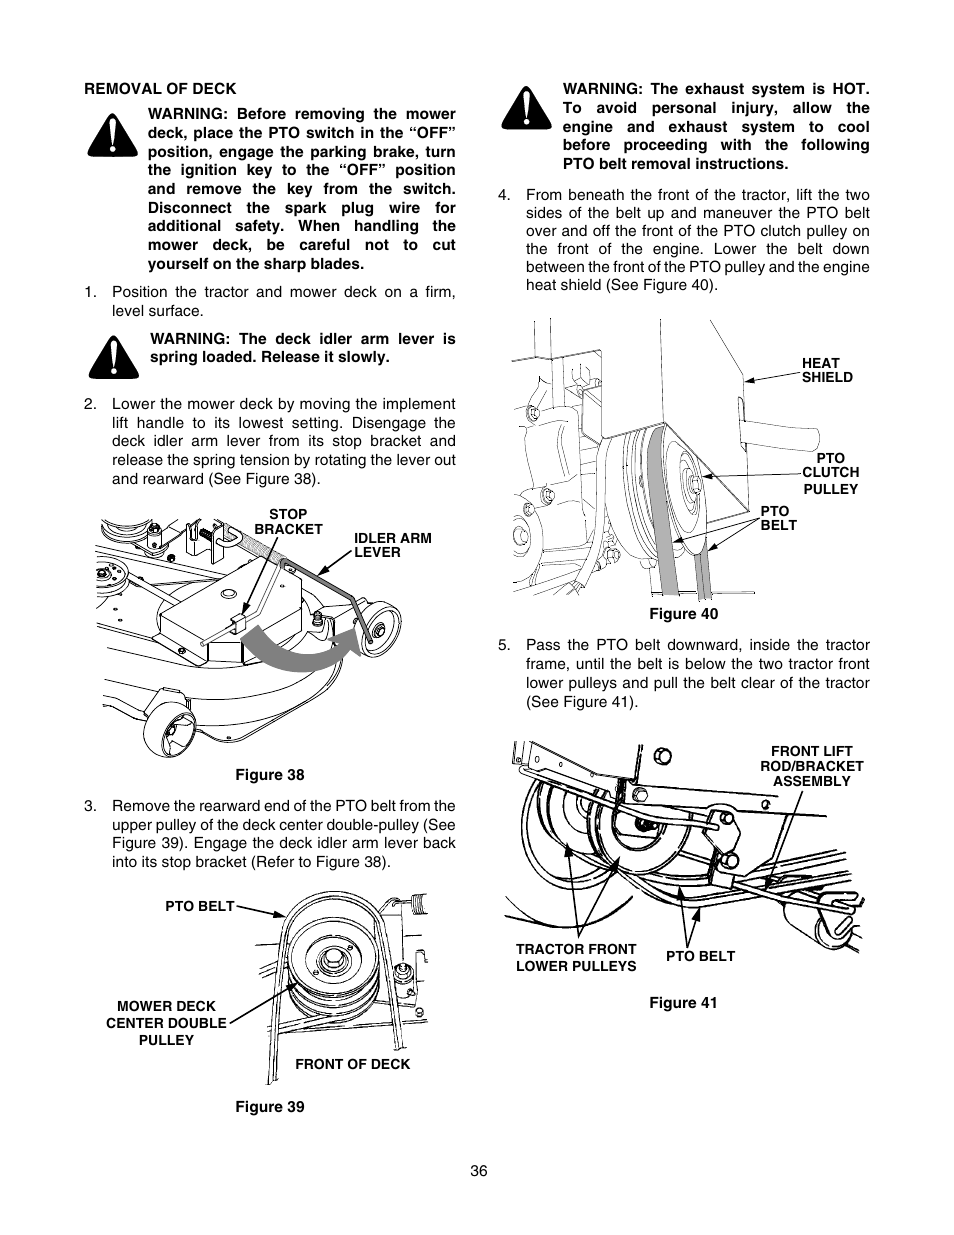 hight resolution of wiring diagram for dodge fan clutch